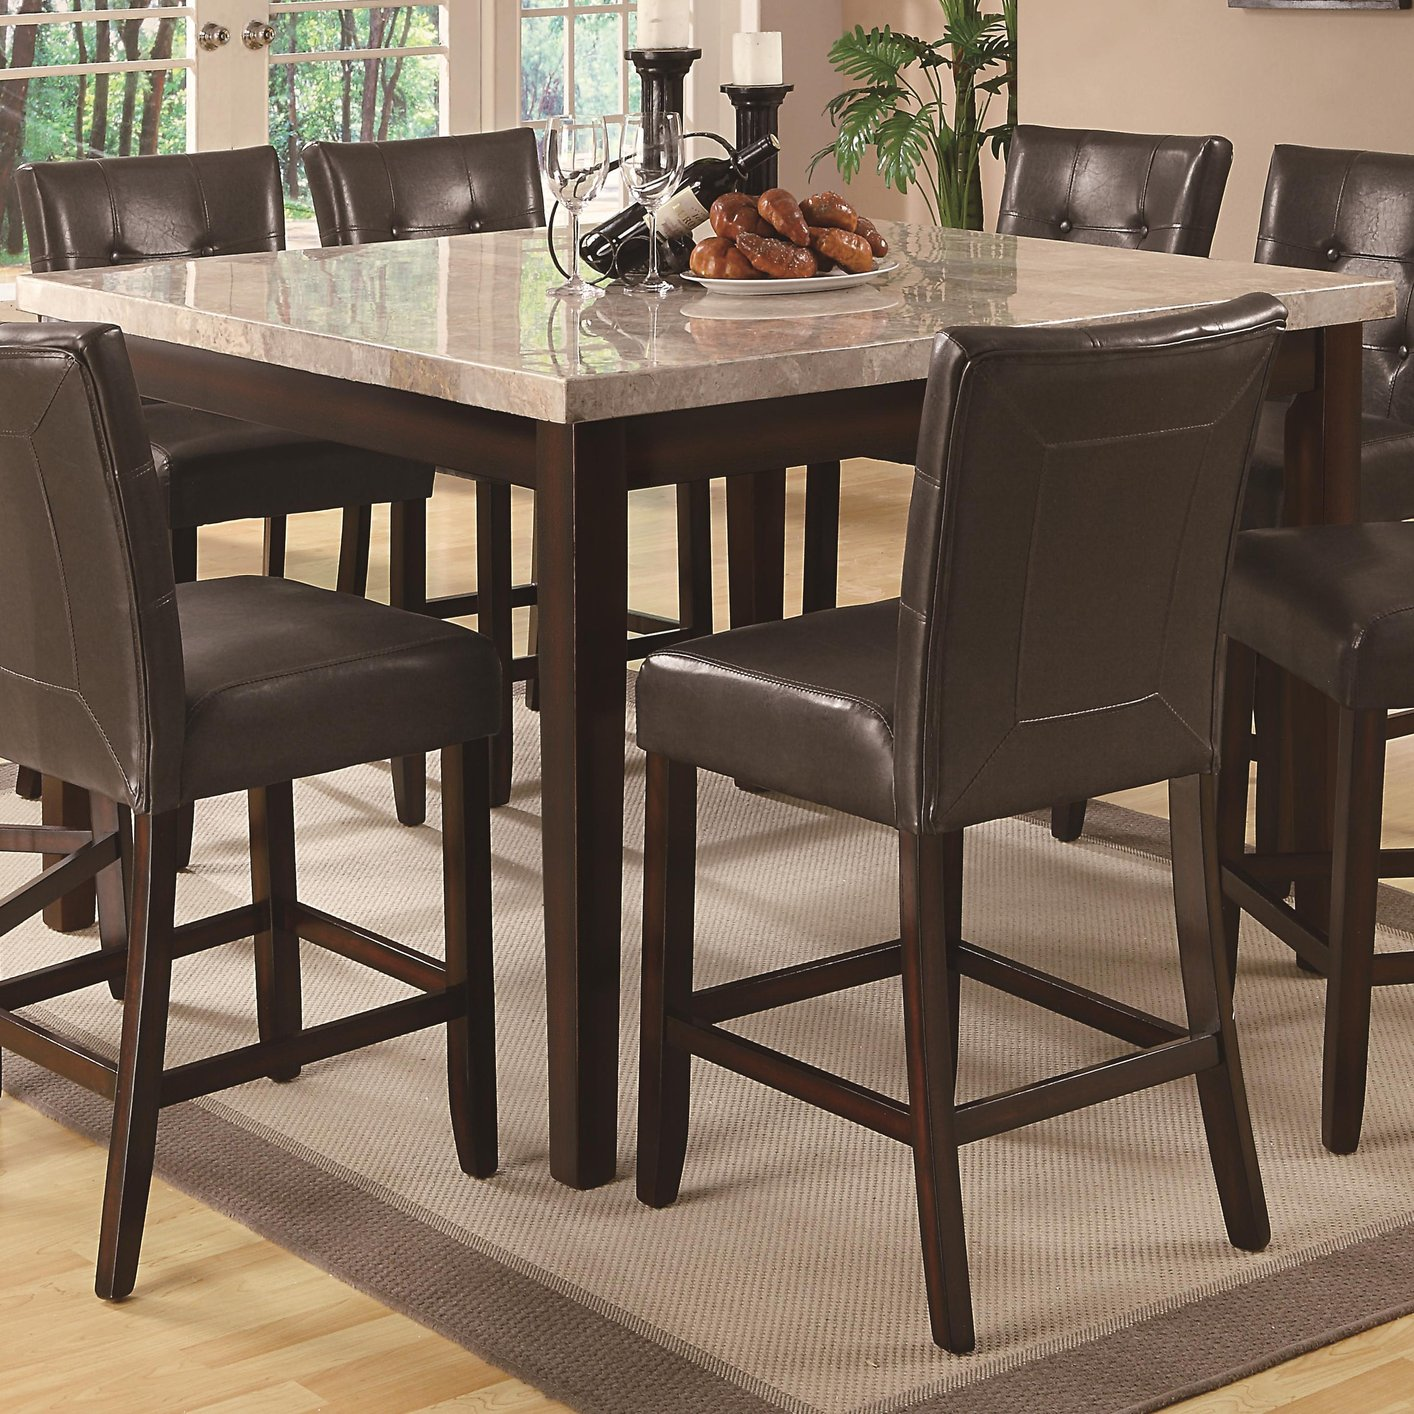 Coaster 103778 Brown Marble Dining Table Steal A Sofa